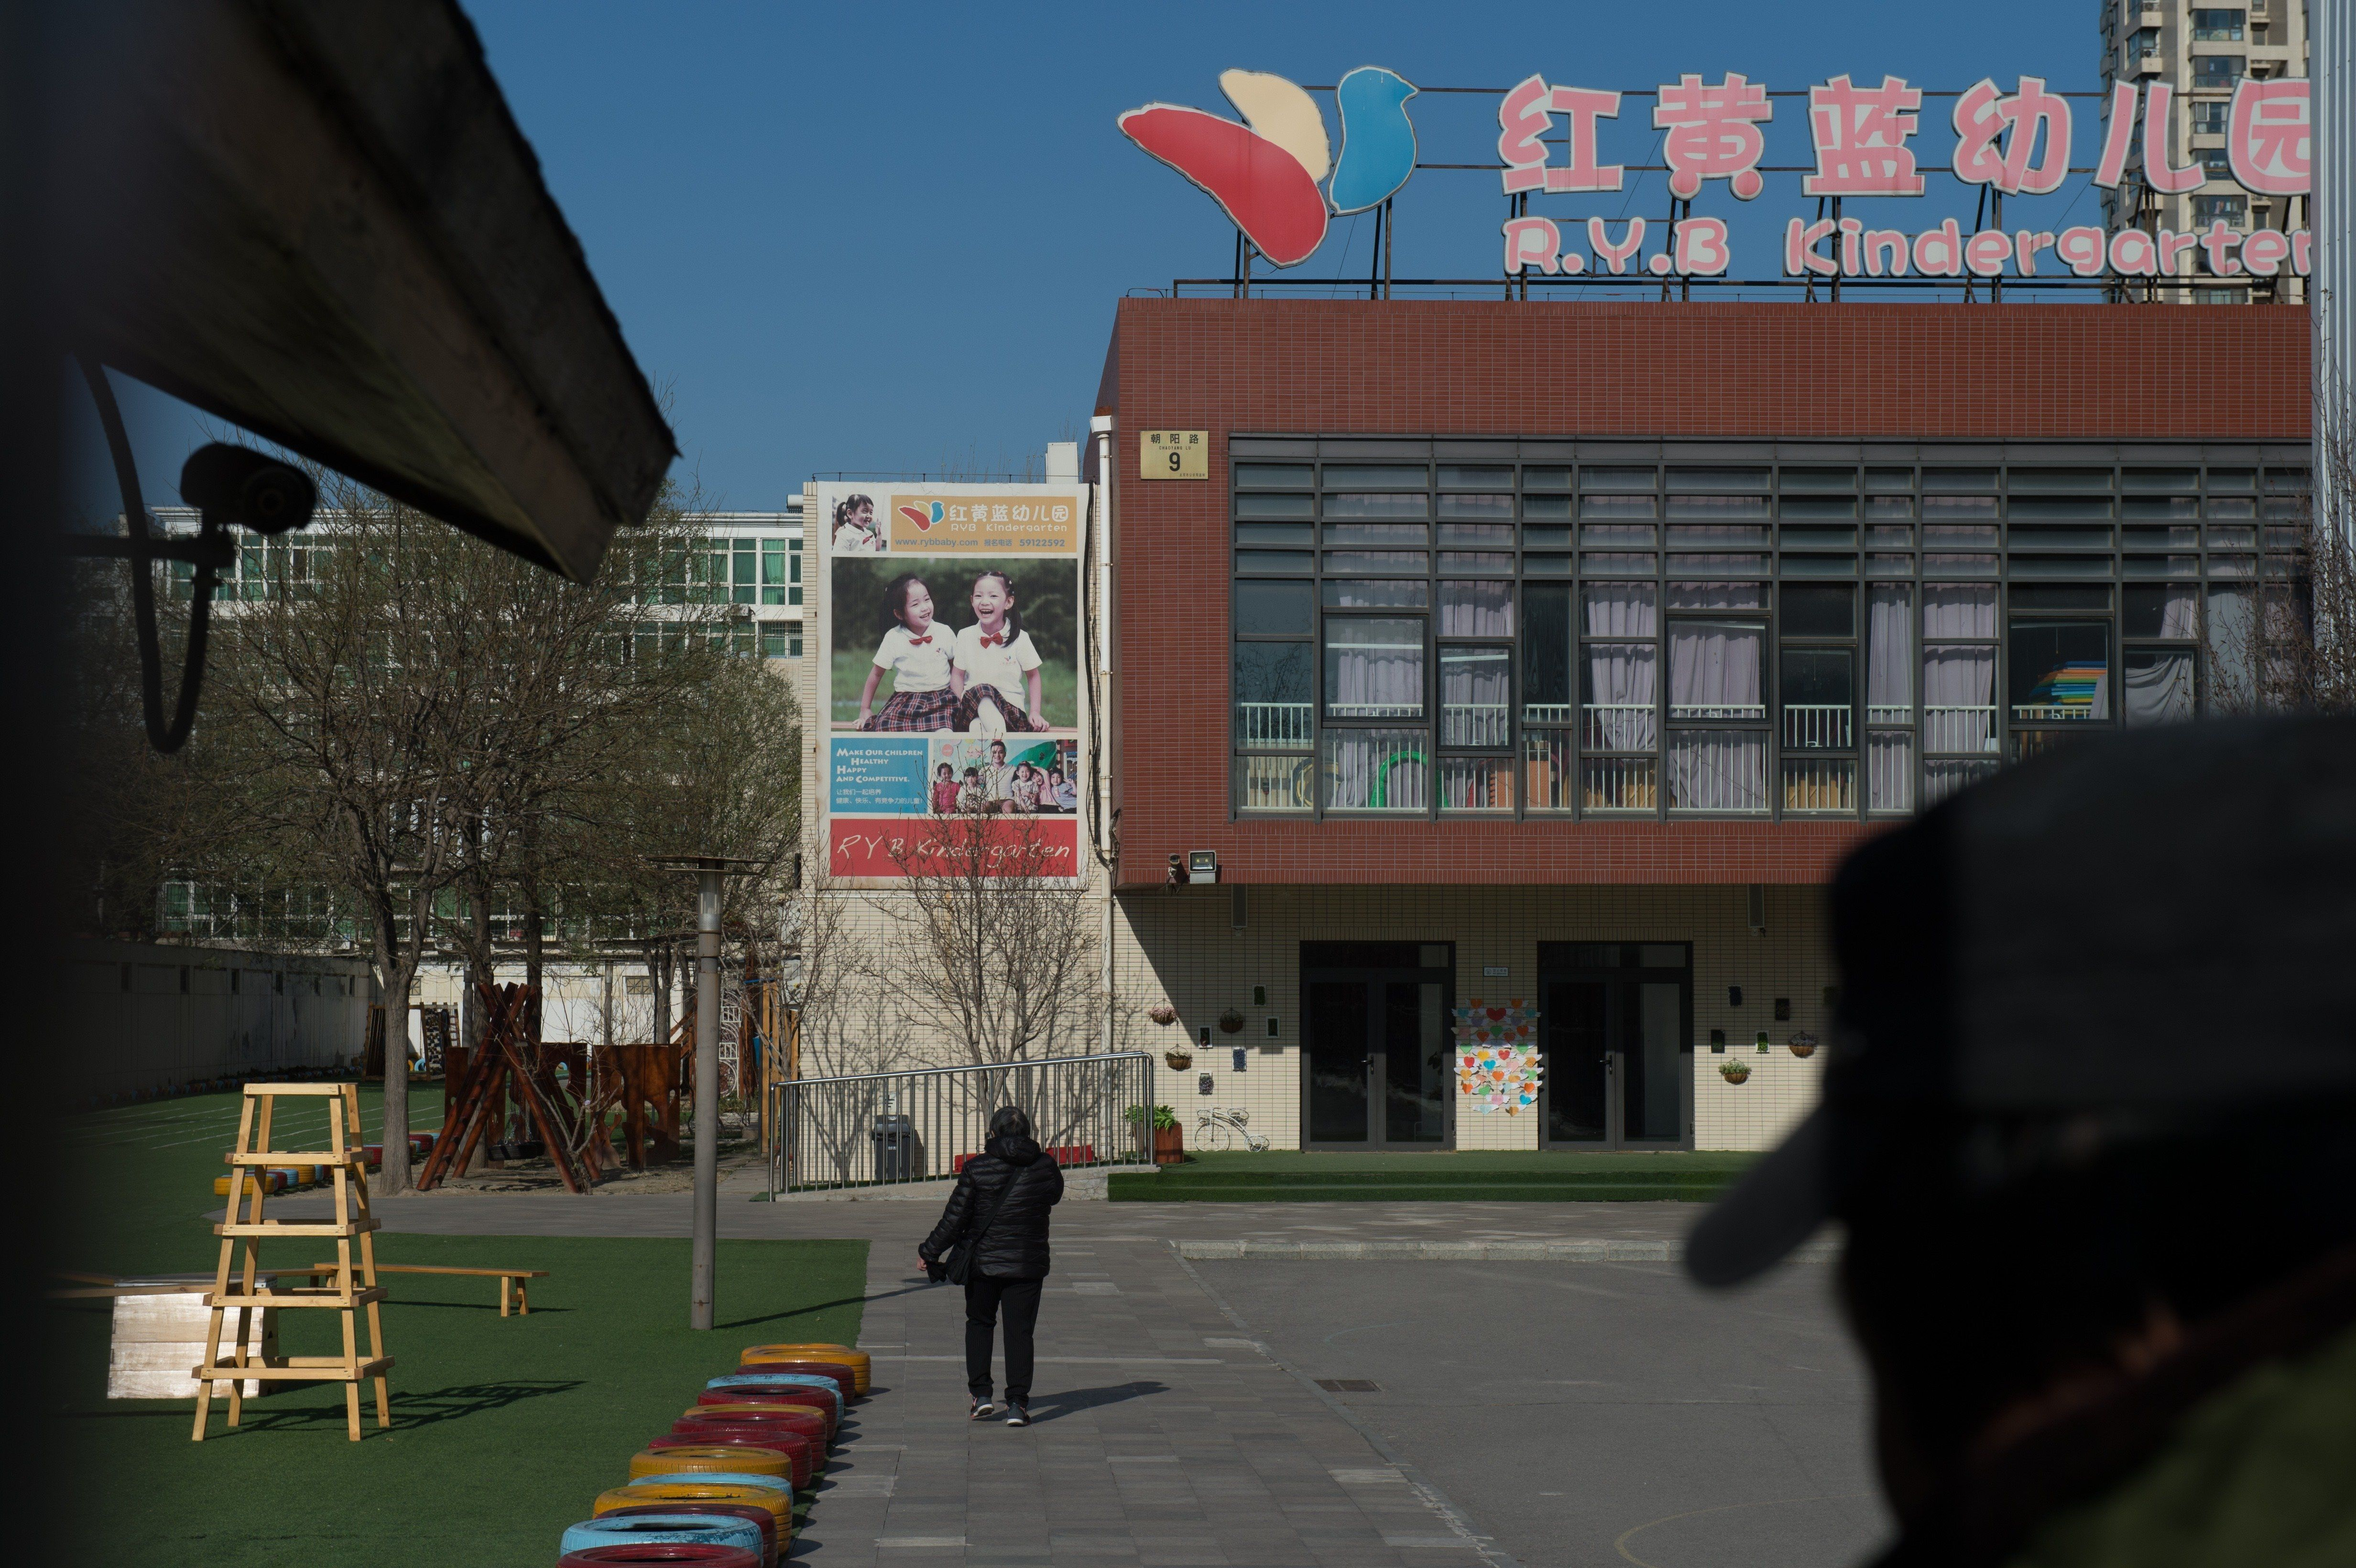 This general view shows the RYB Education New World kindergarten in Beijing on November 24, 2017. Chinese police have launched an investigation into alleged child abuse at a Beijing pre-school after parents said toddlers were apparently jabbed with needles and given mysterious pills, sparking outrage days after another daycare scandal. / AFP PHOTO / NICOLAS ASFOURI        (Photo credit should read NICOLAS ASFOURI/AFP/Getty Images)